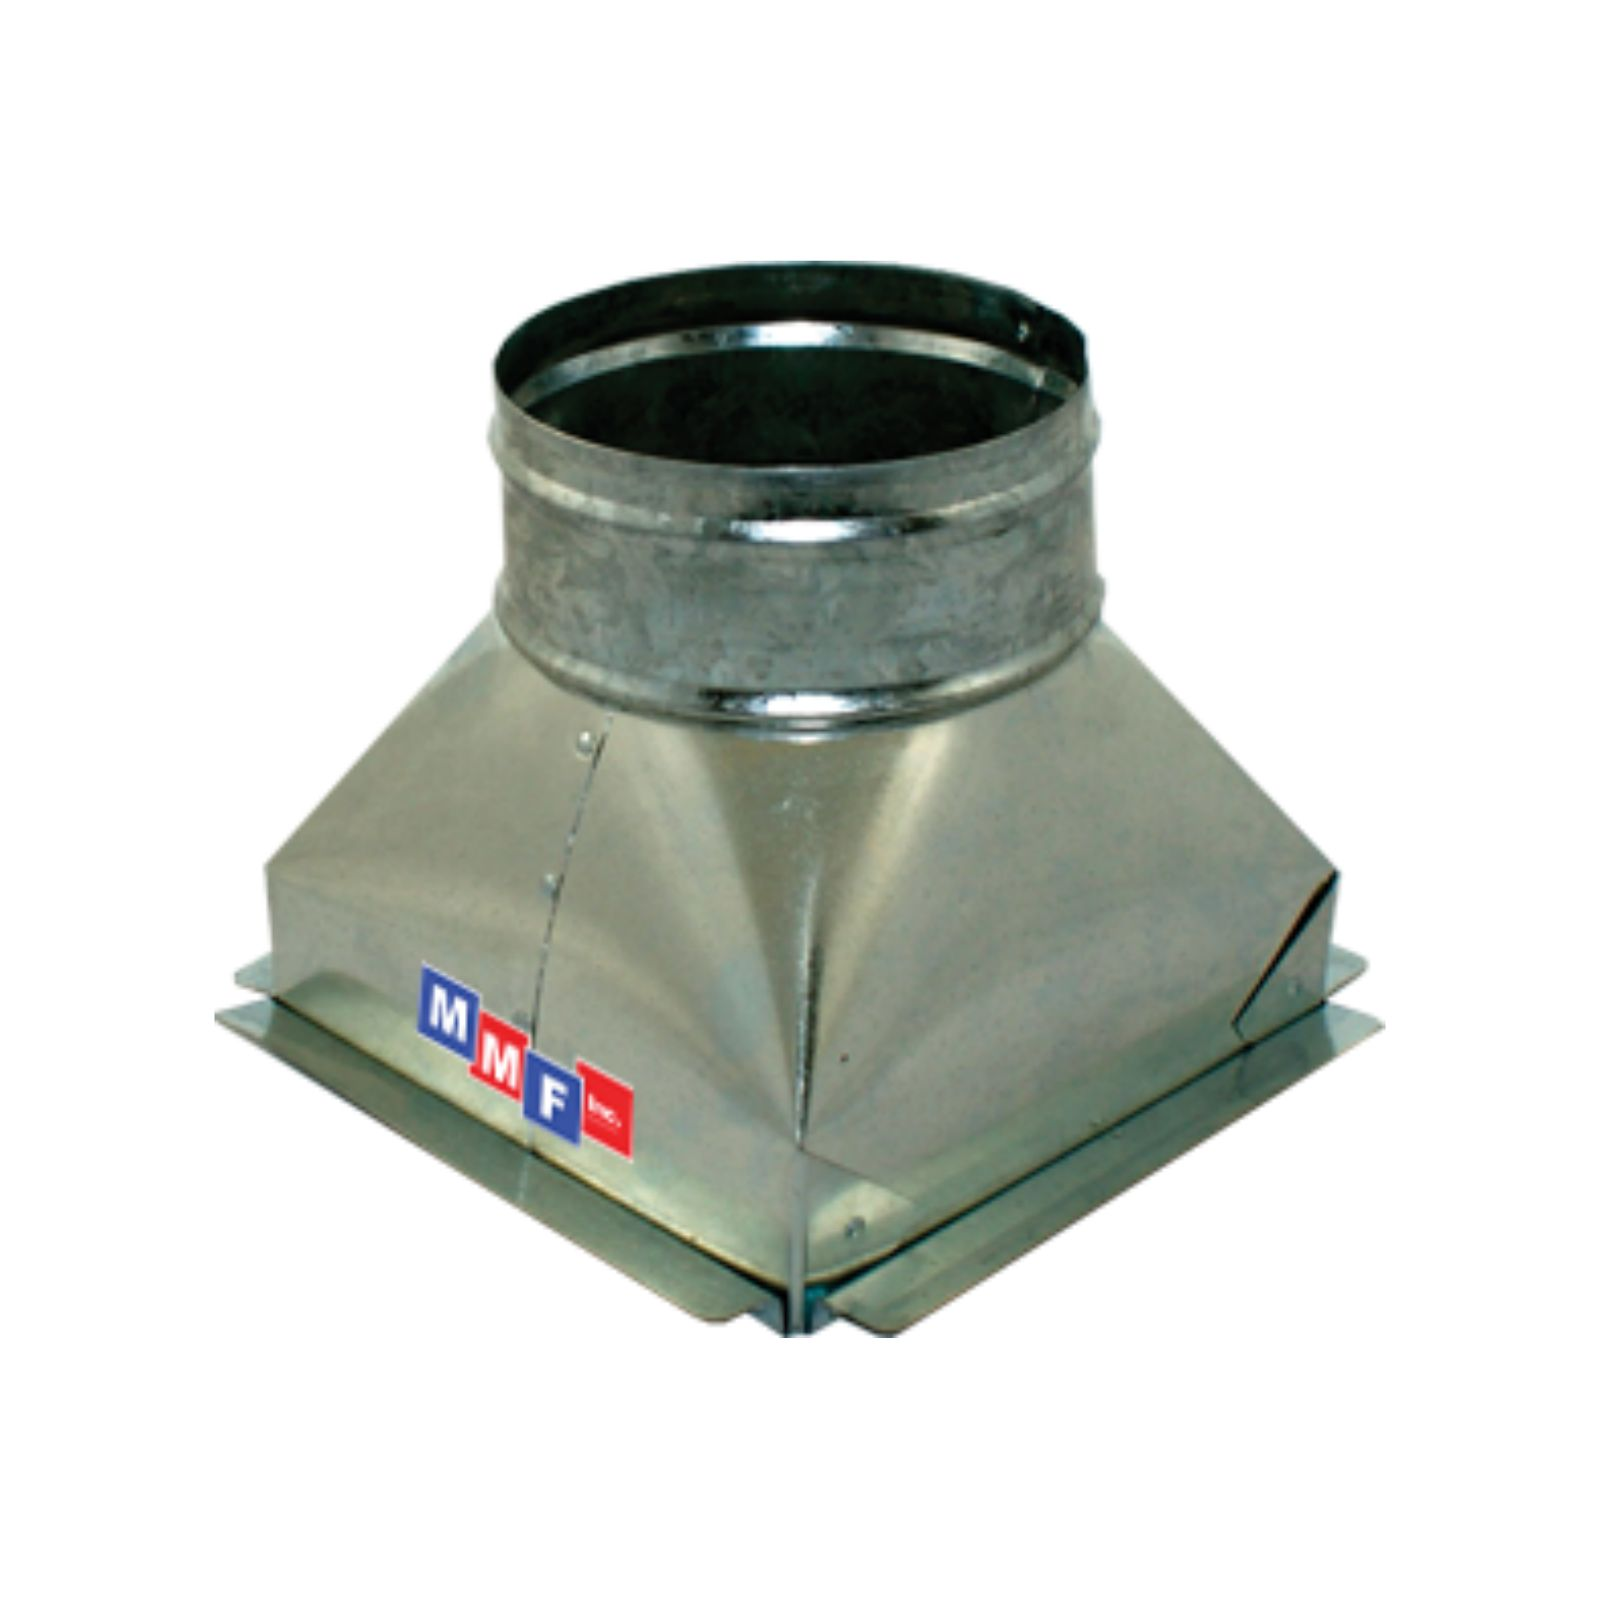 "Modular Metal BTSCG080806P - Sealed Tapered Ceiling Box 08"" X 08"" X 06"" Round - With Plaster Ground Flange - 30 Gauge"